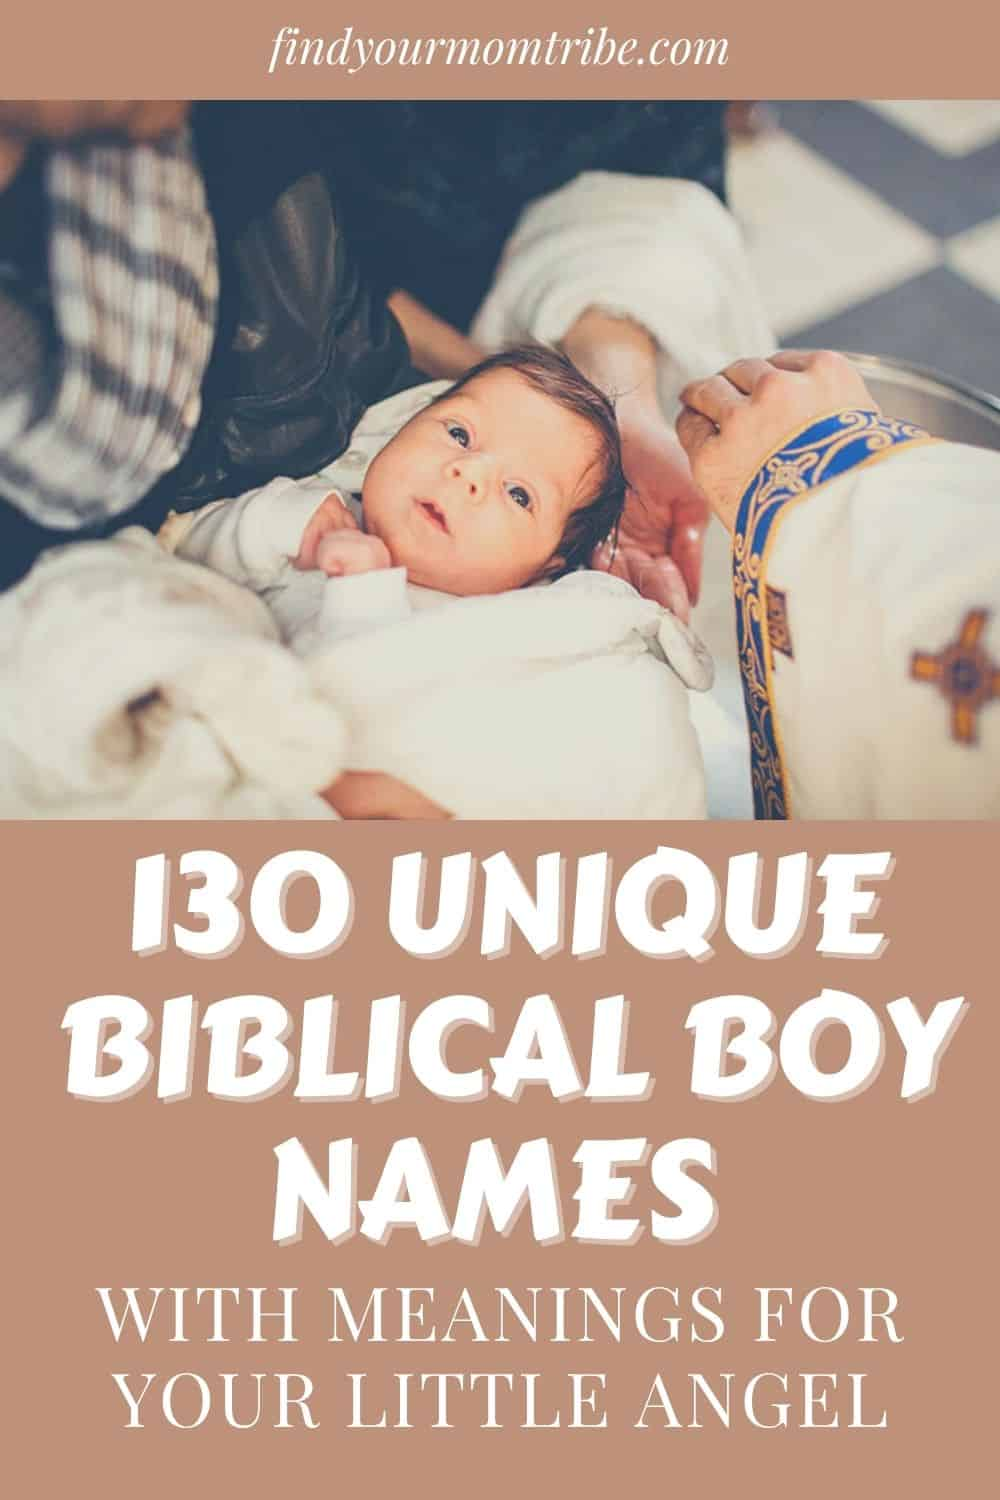 130 Unique Biblical Boy Names With Meanings For Your Little Angel